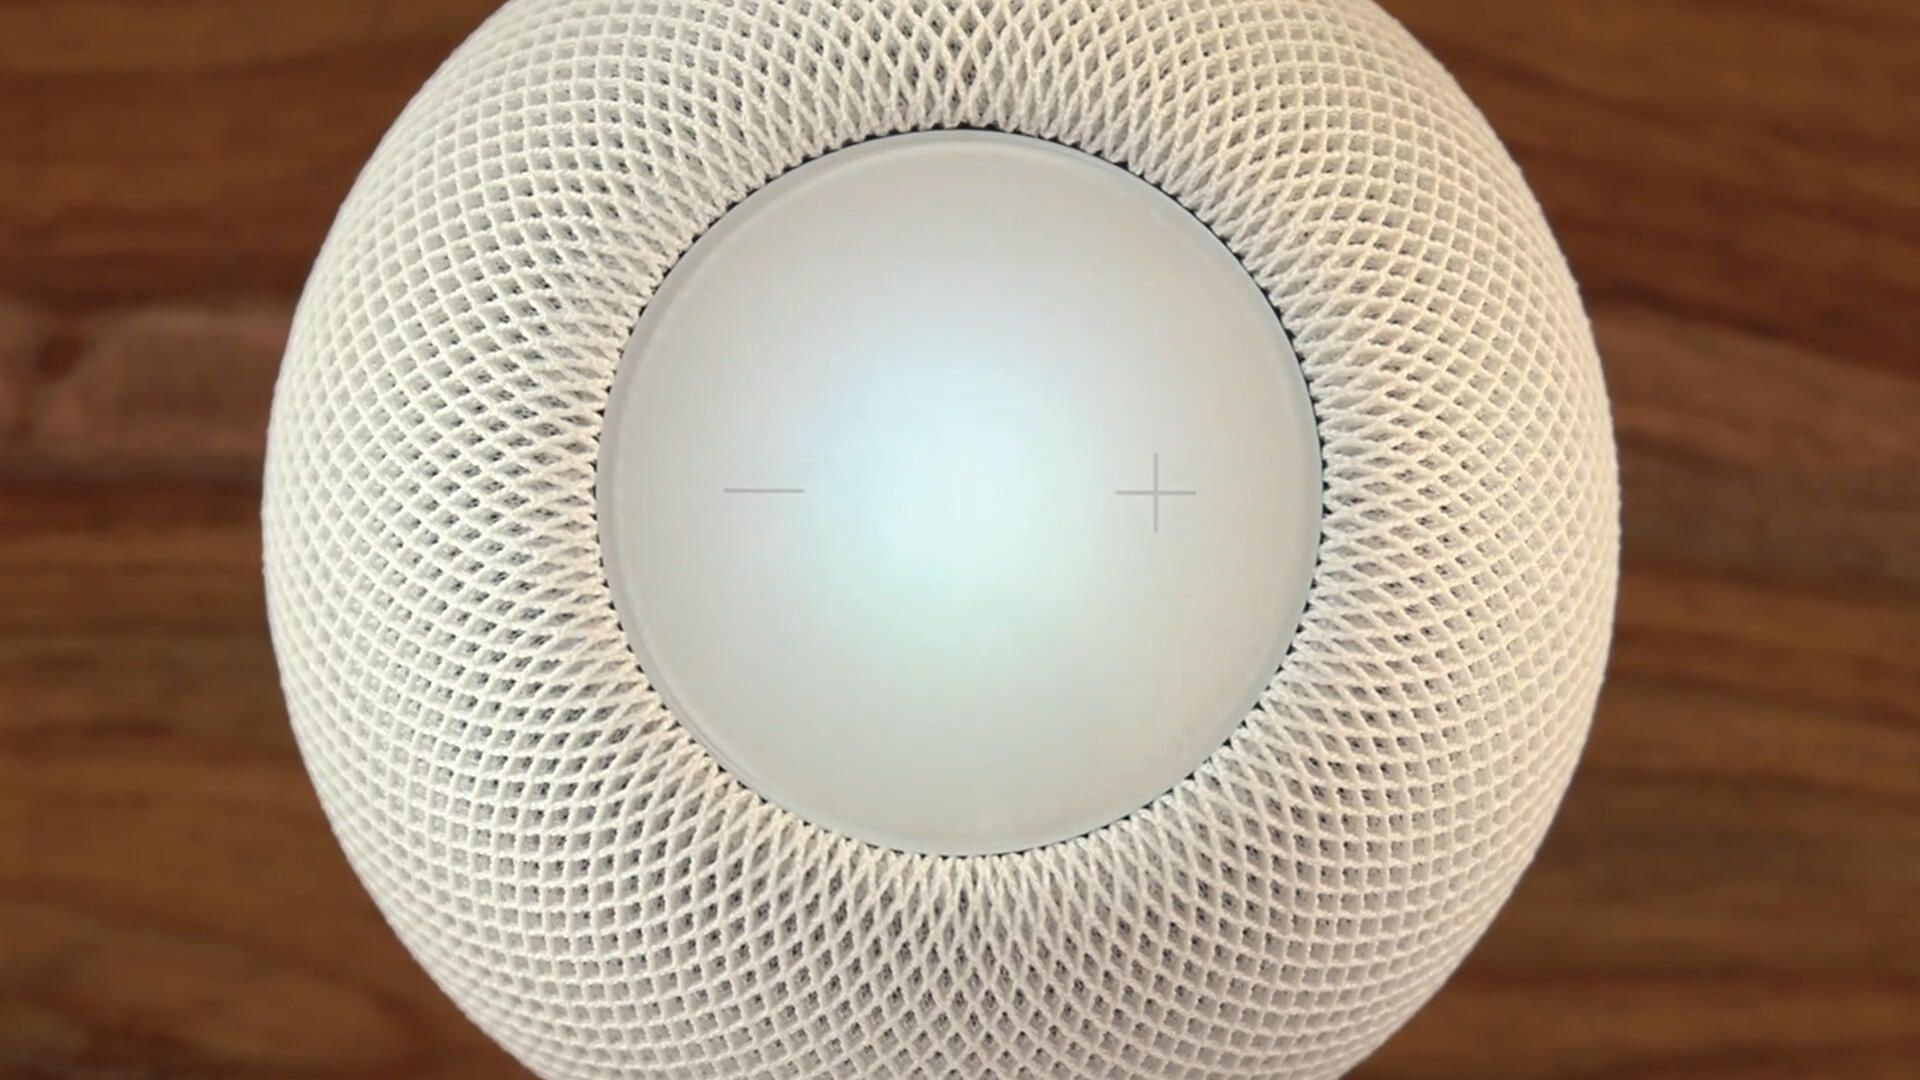 tt-homepod-still